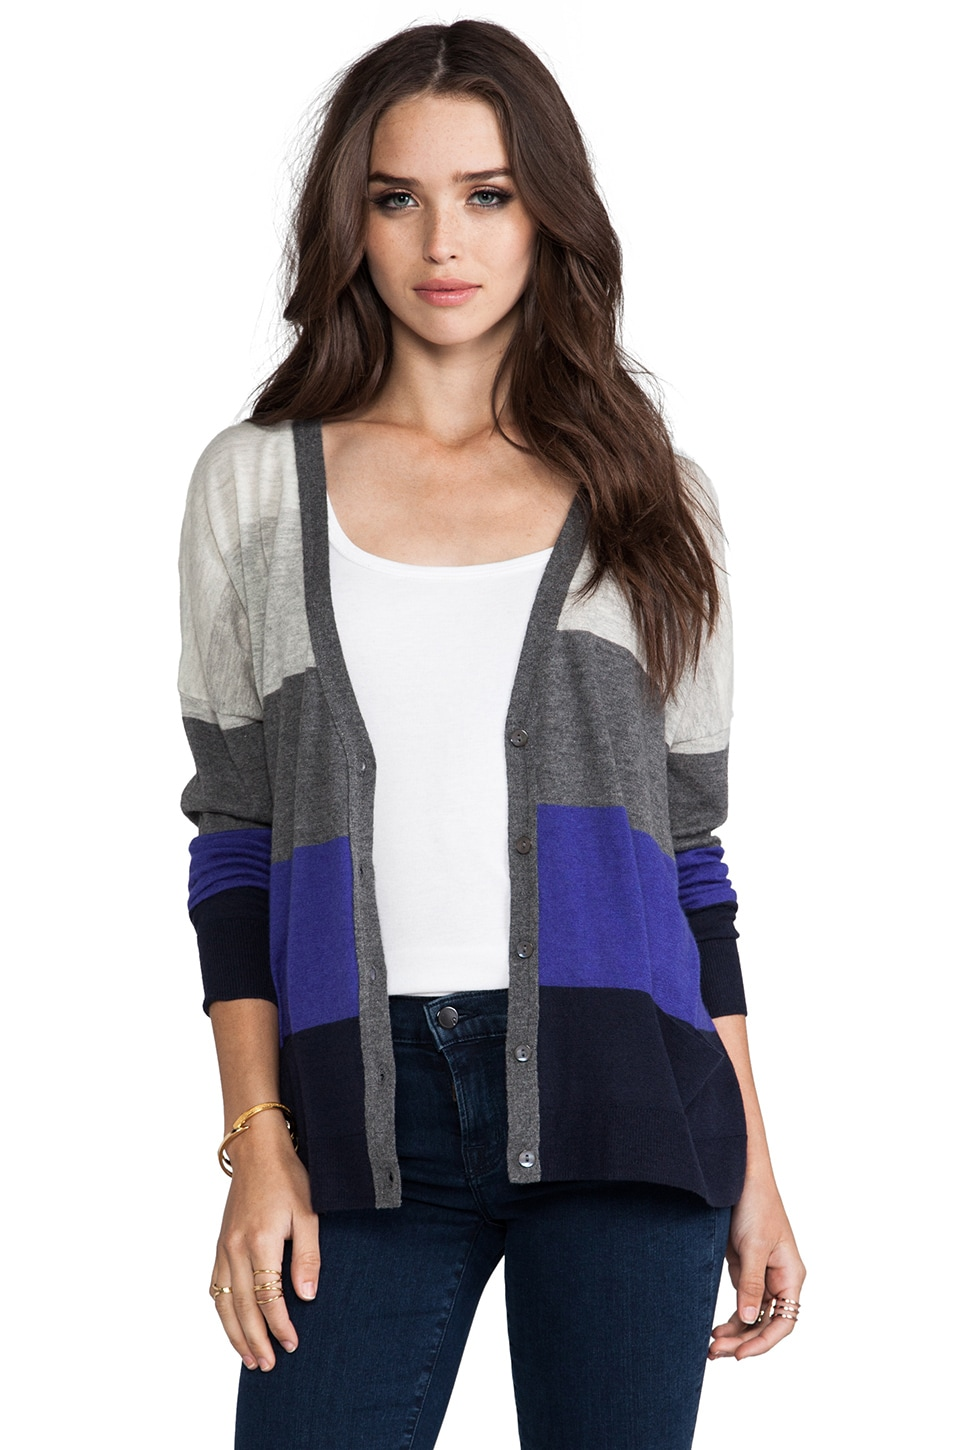 Autumn Cashmere Tissue Cashmere Rectangle Stripe Cardigan in Peacoat/Sodalite